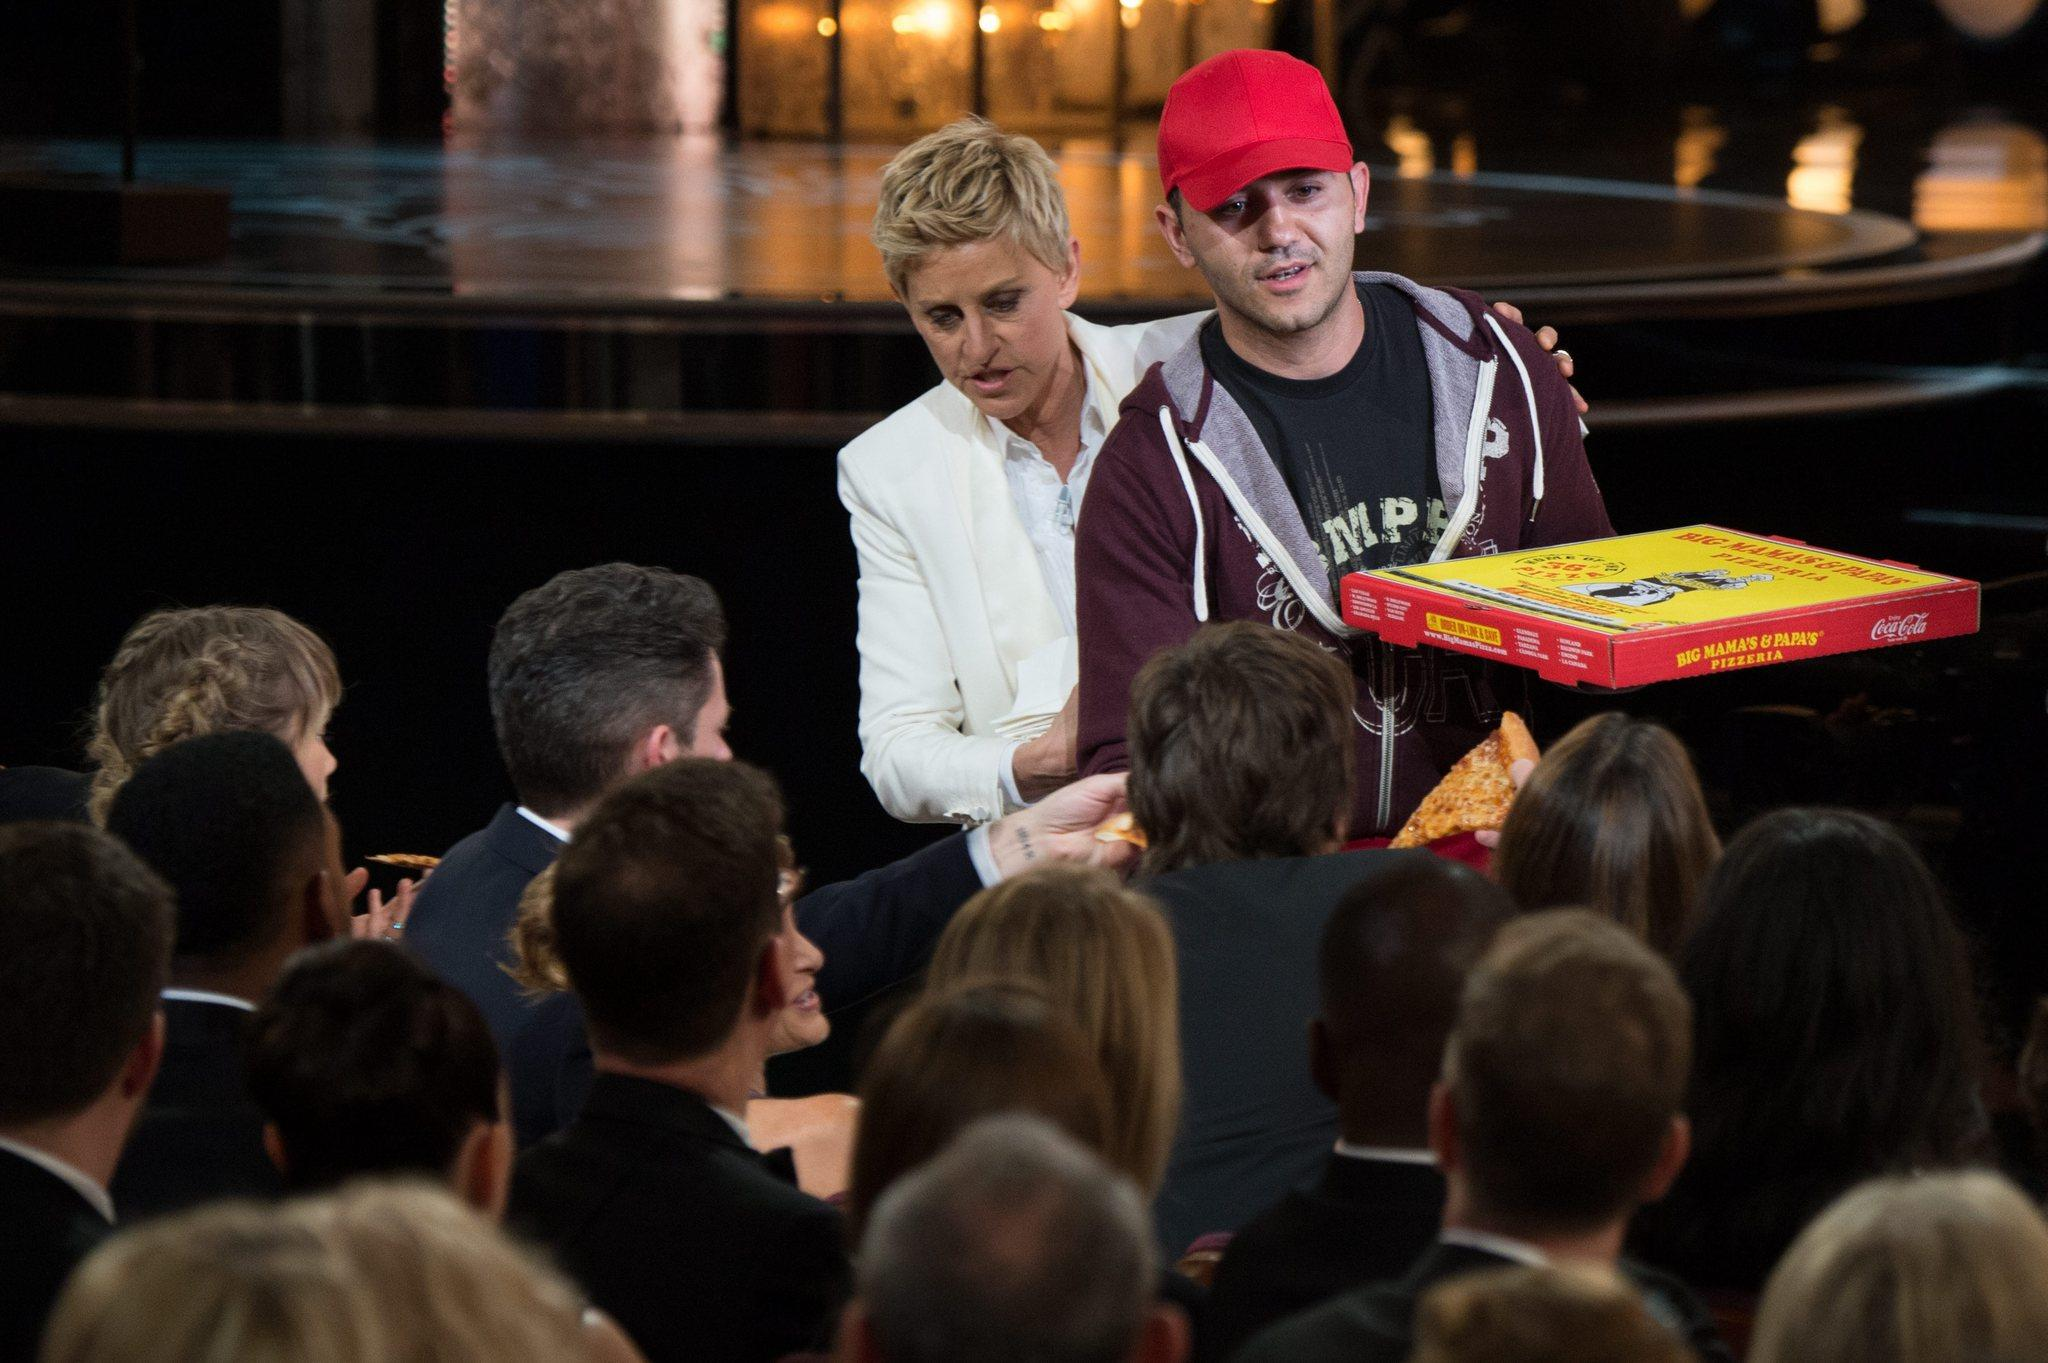 Oscar host Ellen DeGeneres (C) passing out pizza during the 86th annual Academy Awards ceremony.